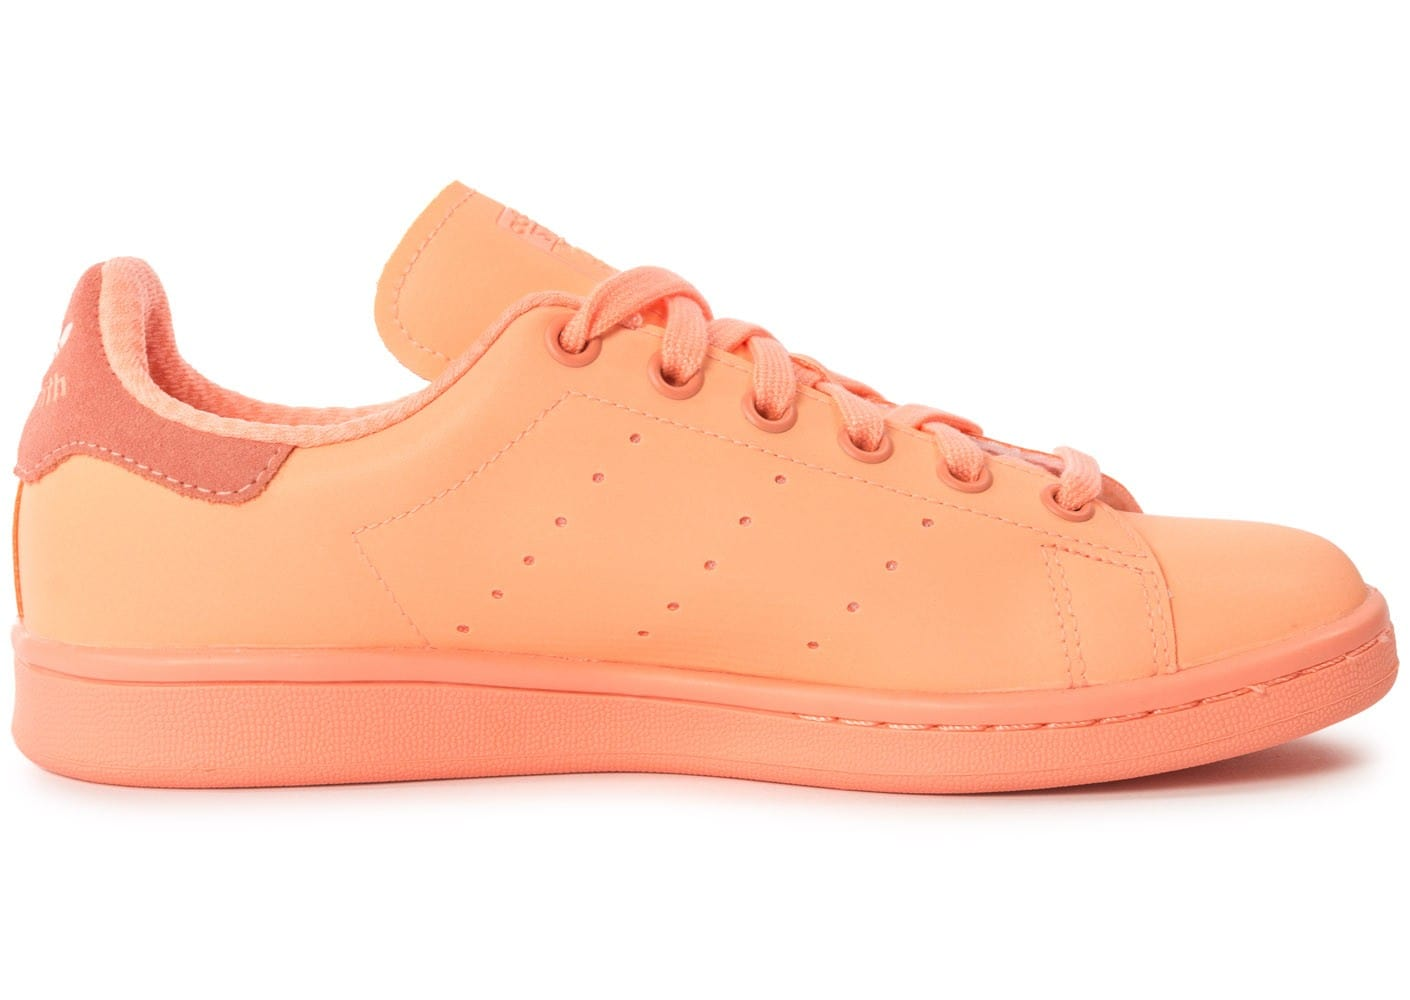 huge discount 14b24 fa40f ... Chaussures adidas Stan Smith Adicolor W Sun Glow vue avant ...